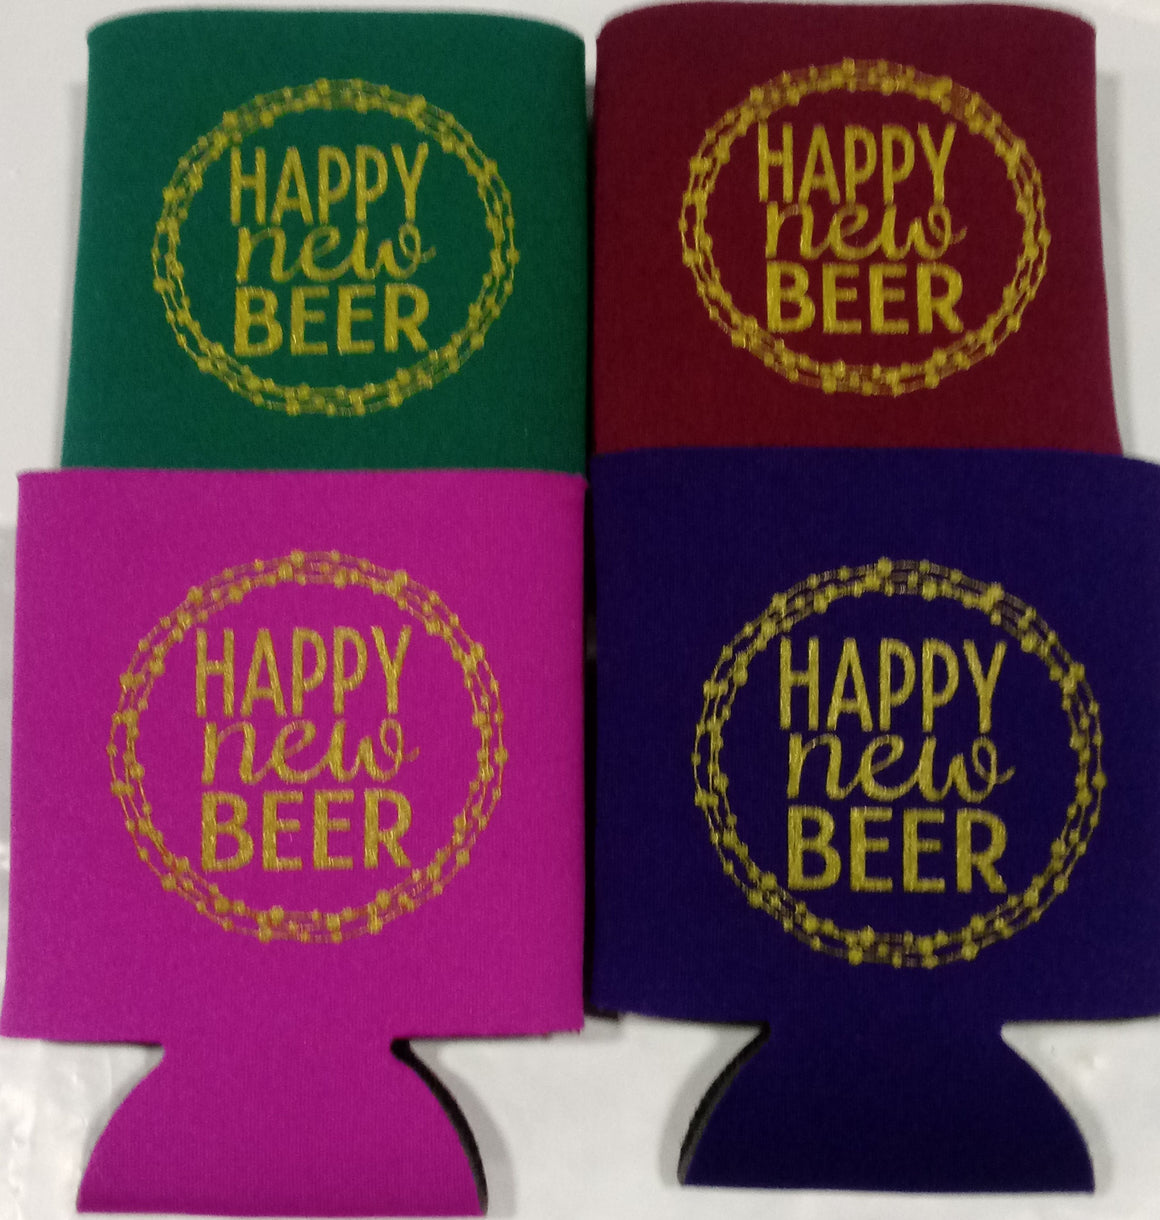 Happy New beer party favors can coolers new year idea